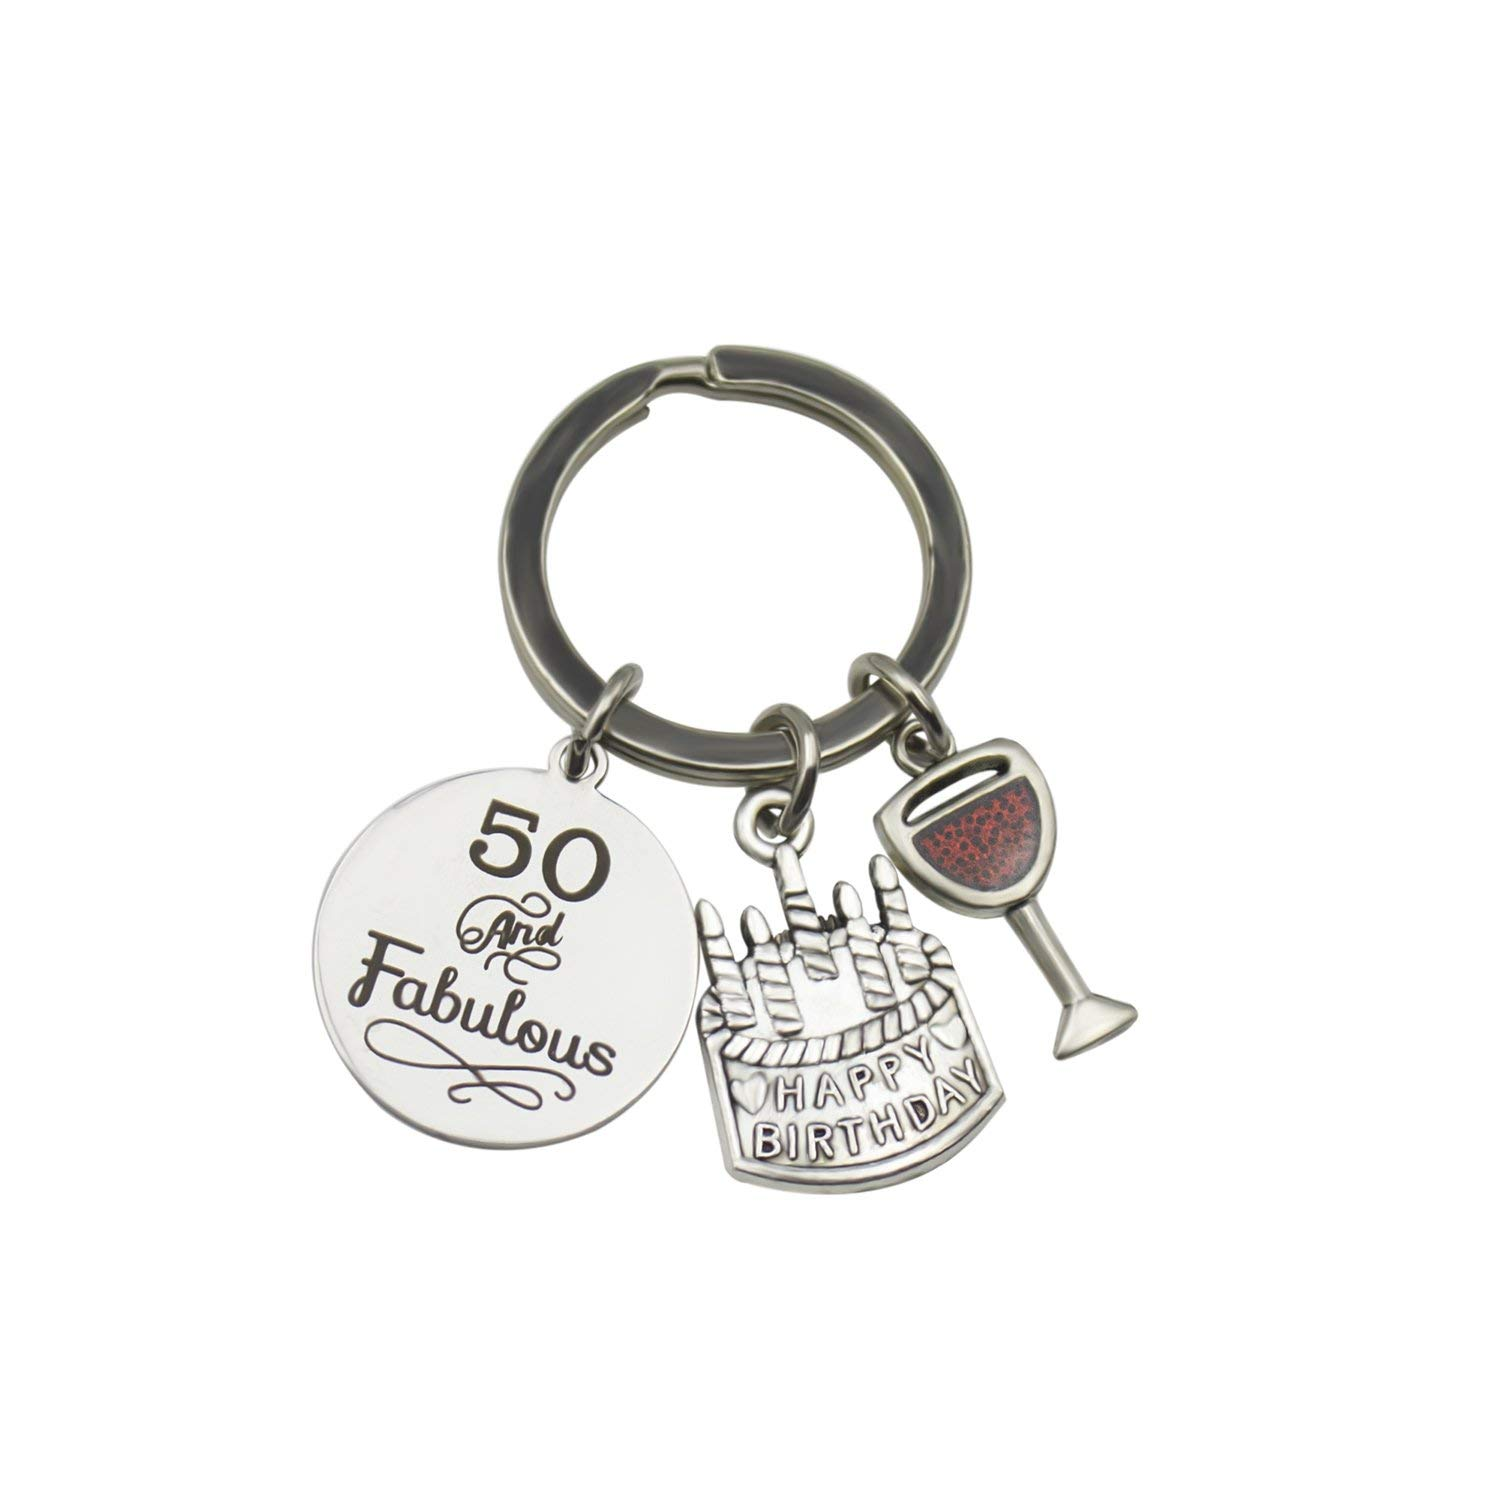 Provided 22mm Stainless Steel Firefighter Keyring Diy Fire Extinguisher And Helmet Charm Keychain Fireman Gift For Him Or Her Back To Search Resultsjewelry & Accessories